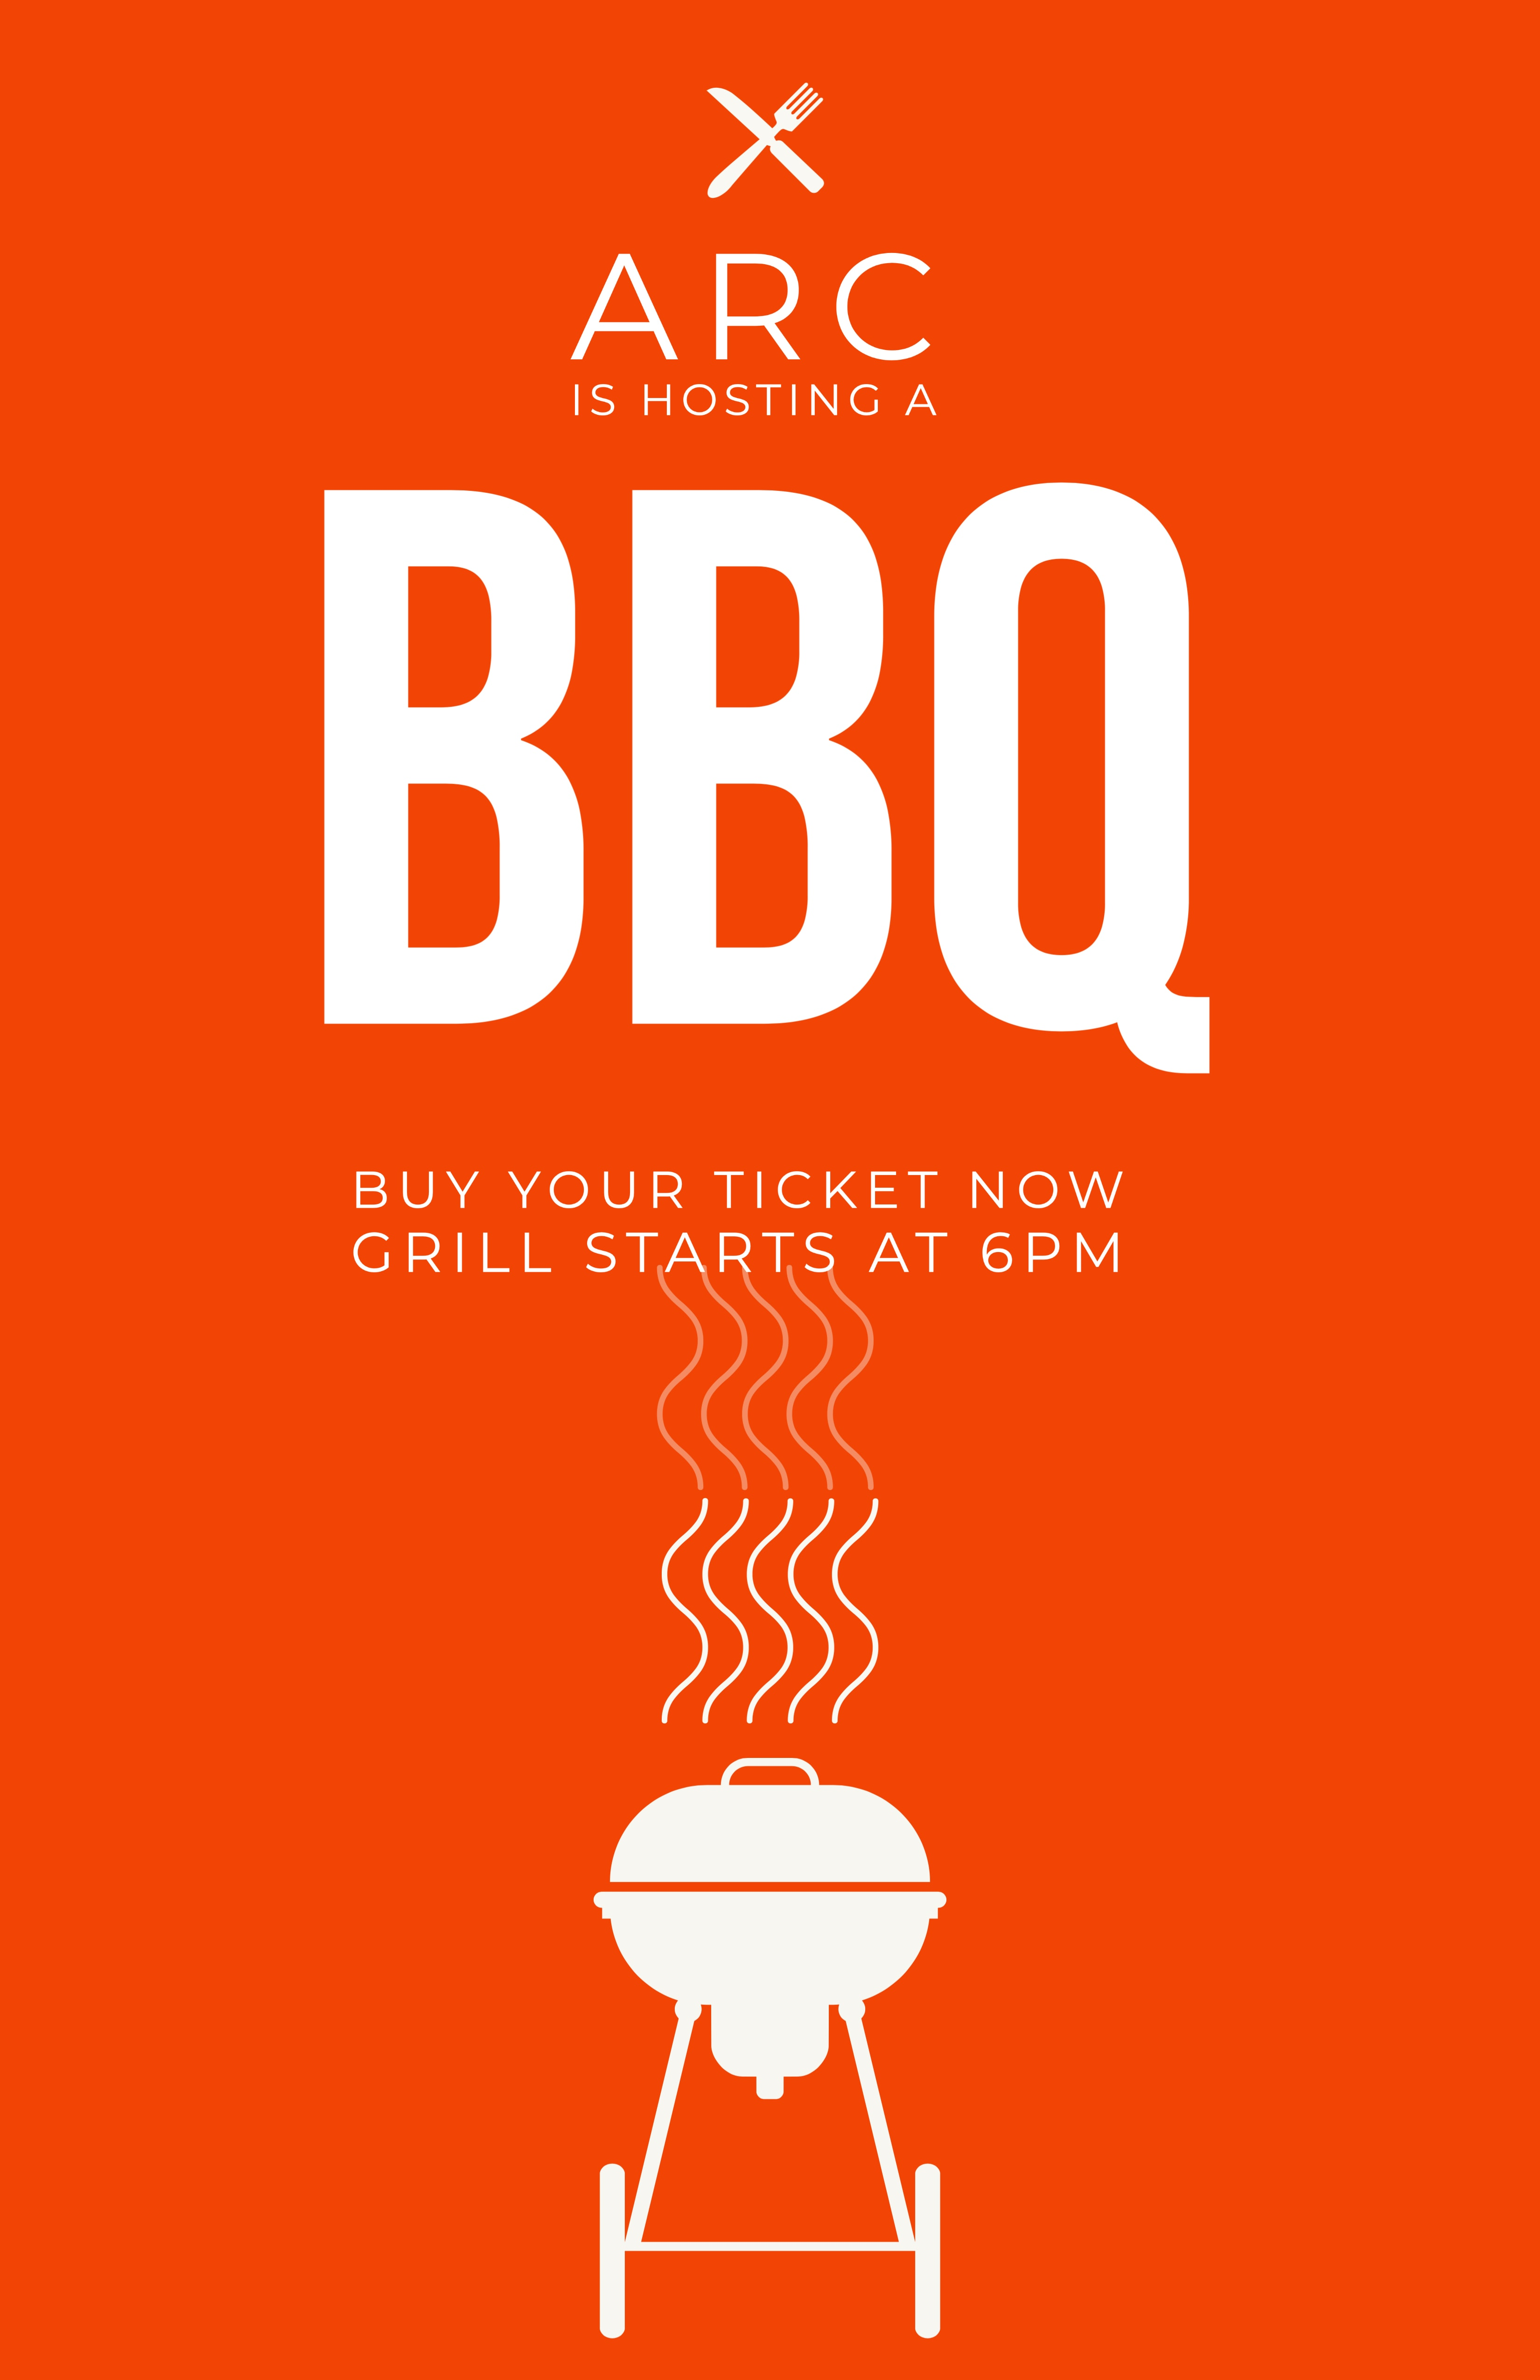 link to the BBQ ticket site